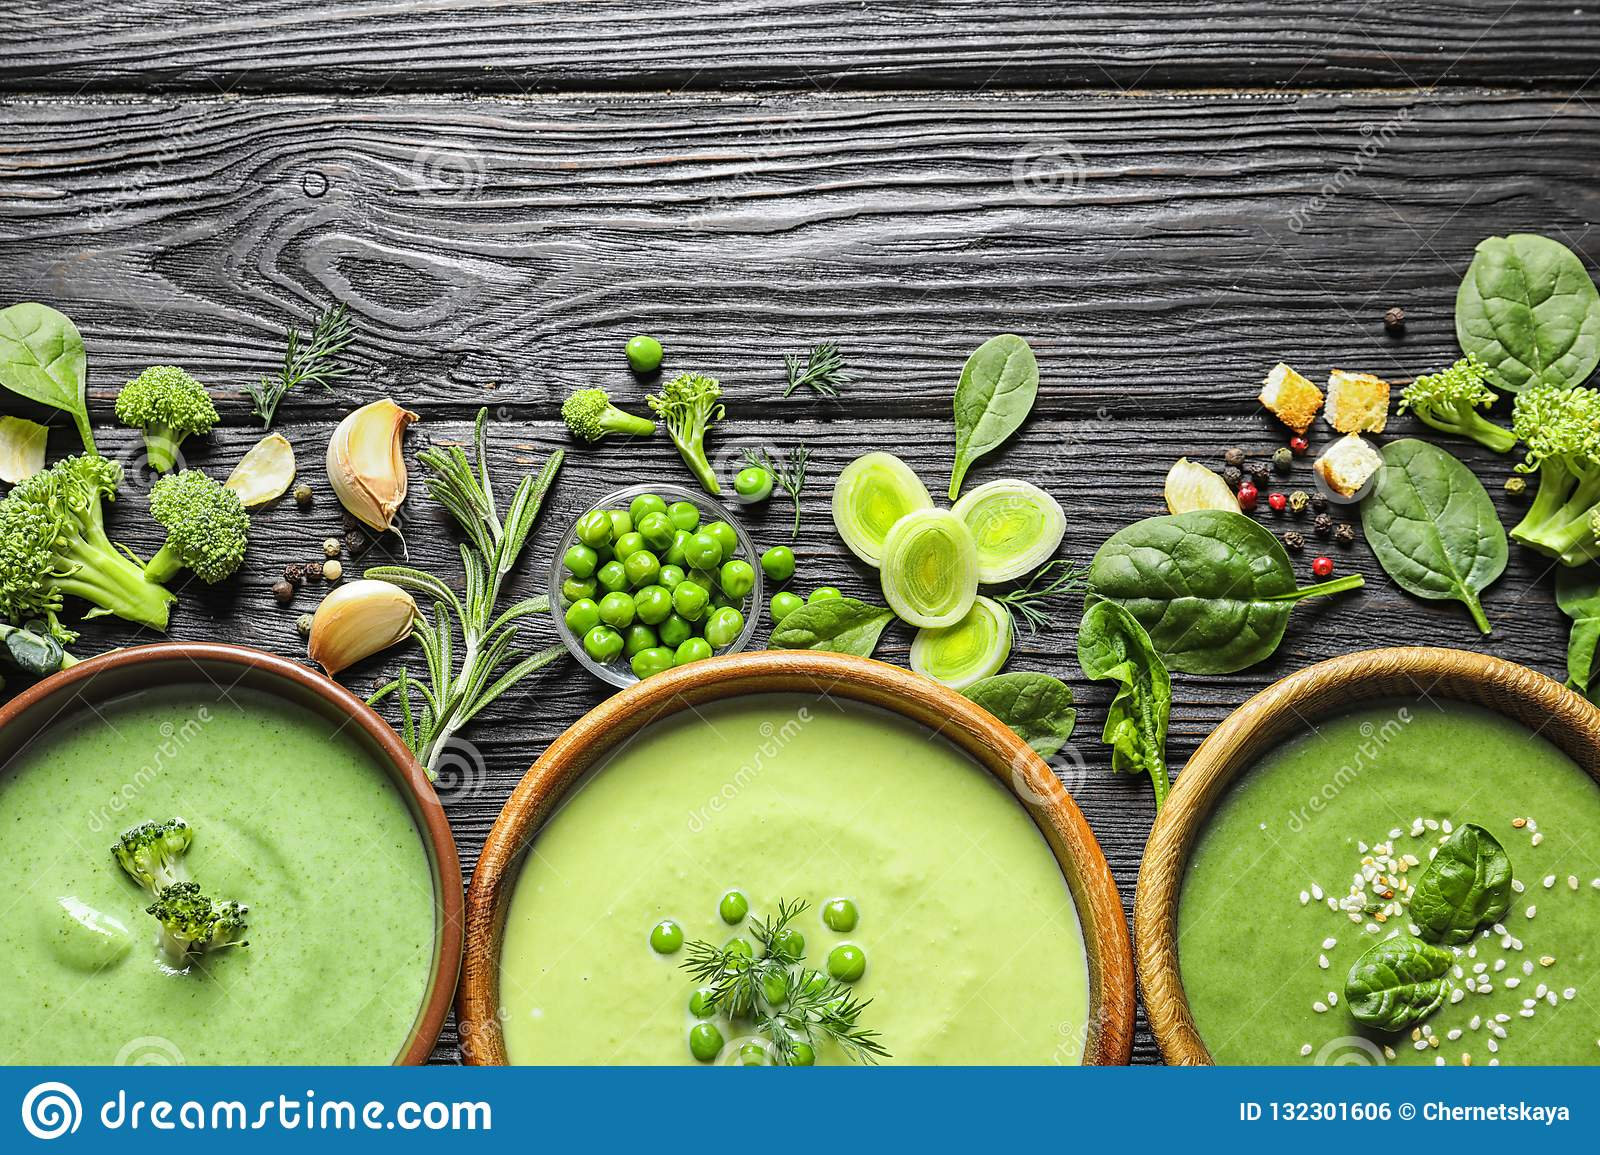 Flat lay composition with different fresh vegetable detox soups made of green peas, broccoli and spinach in dishes on table.